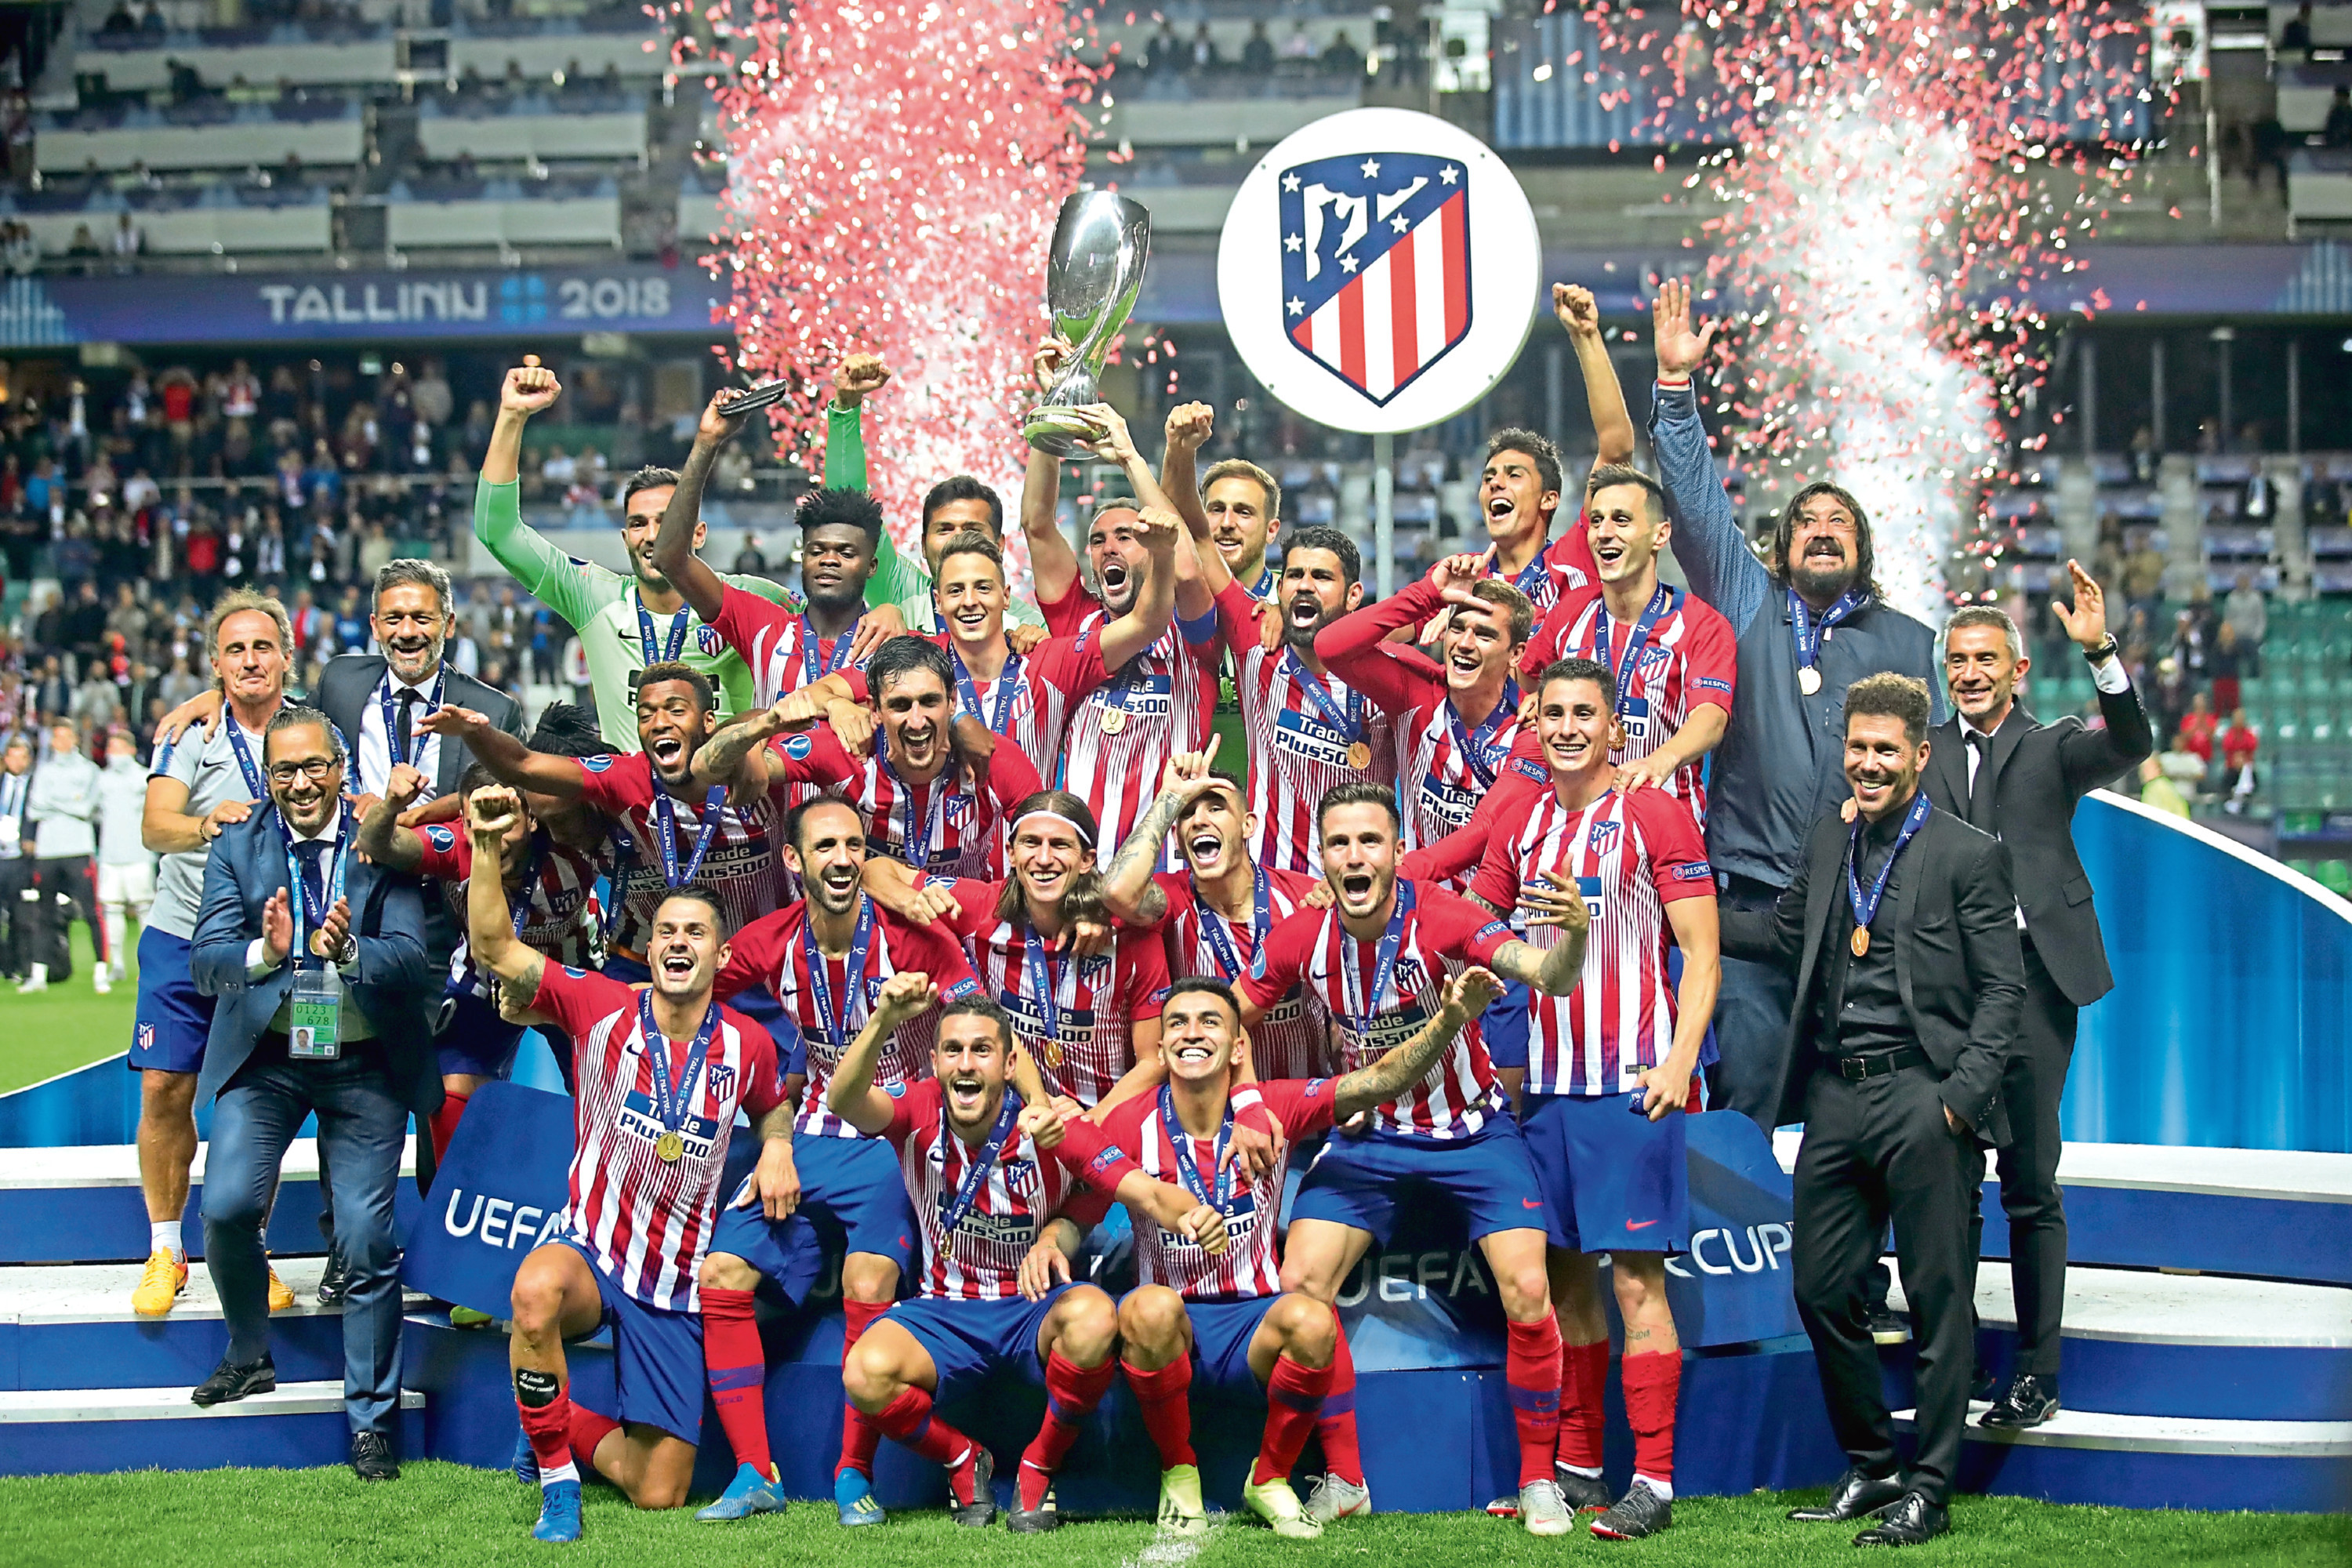 Atletico Madrid celebrate with the trophy following the UEFA Super Cup between Real Madrid and Atletico Madrid at Lillekula Stadium on August 15, 2018 in Tallinn, Estonia.